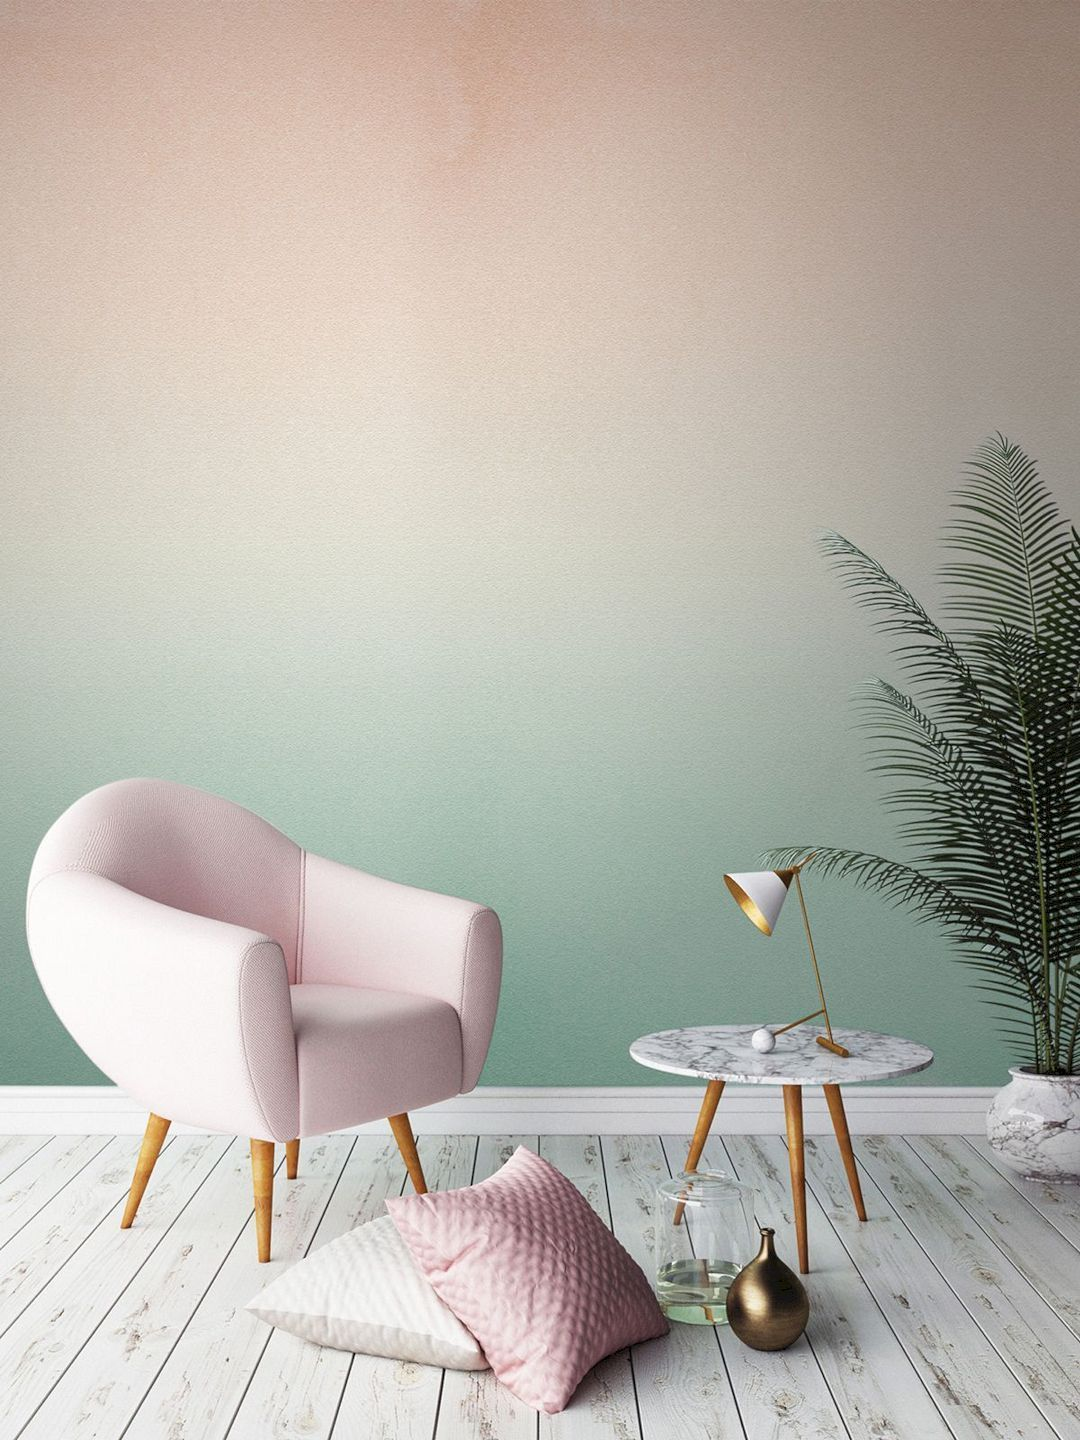 20 Popular Bedroom Paint Colors That Give You Positive Vibes Interior House Interior Room Decor